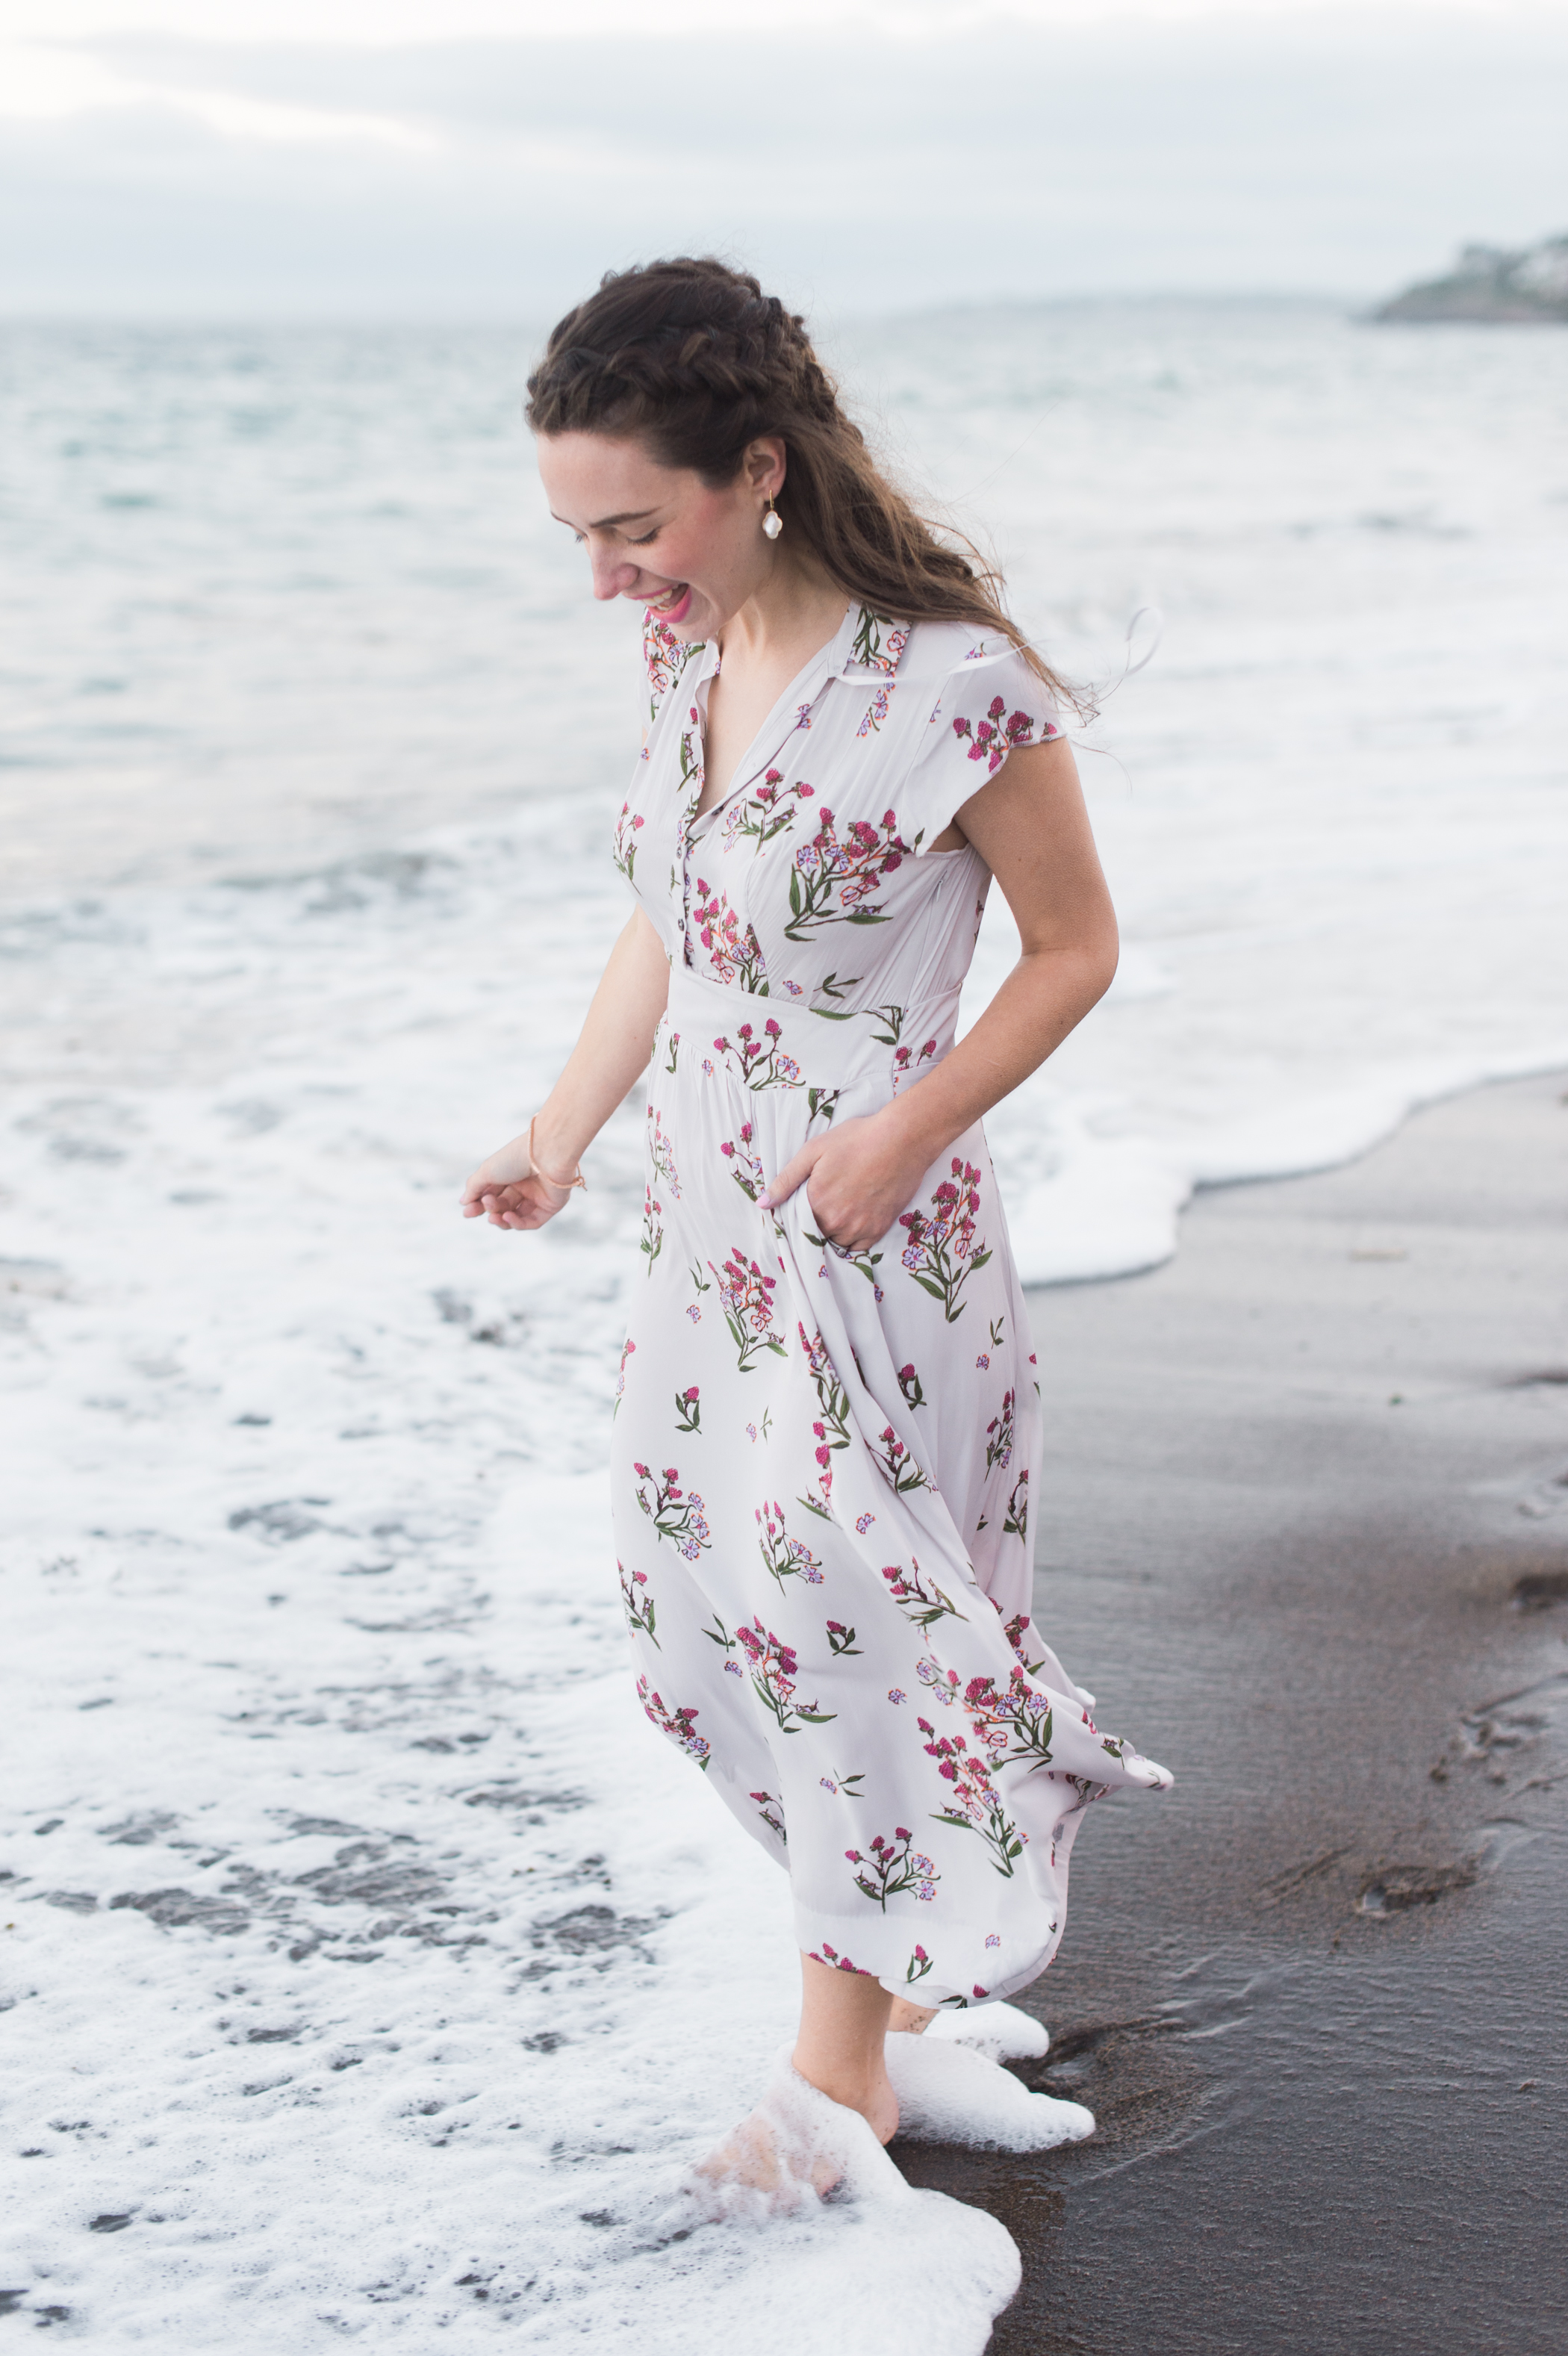 Wearing the prettiest floral dress from Free People